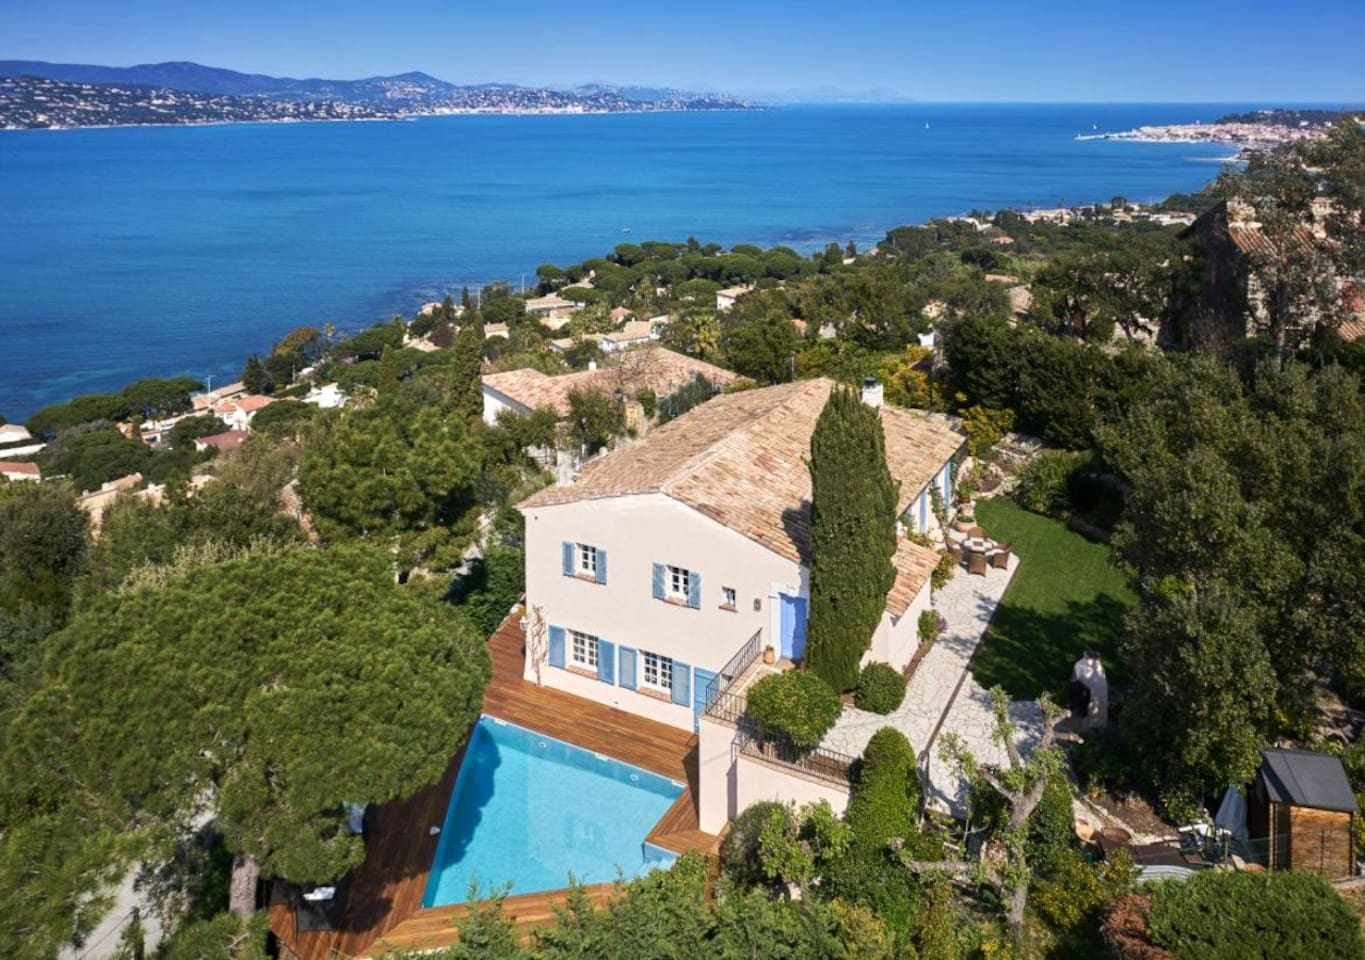 Dominant position and the breathtaking view over the bay of Saint Tropez